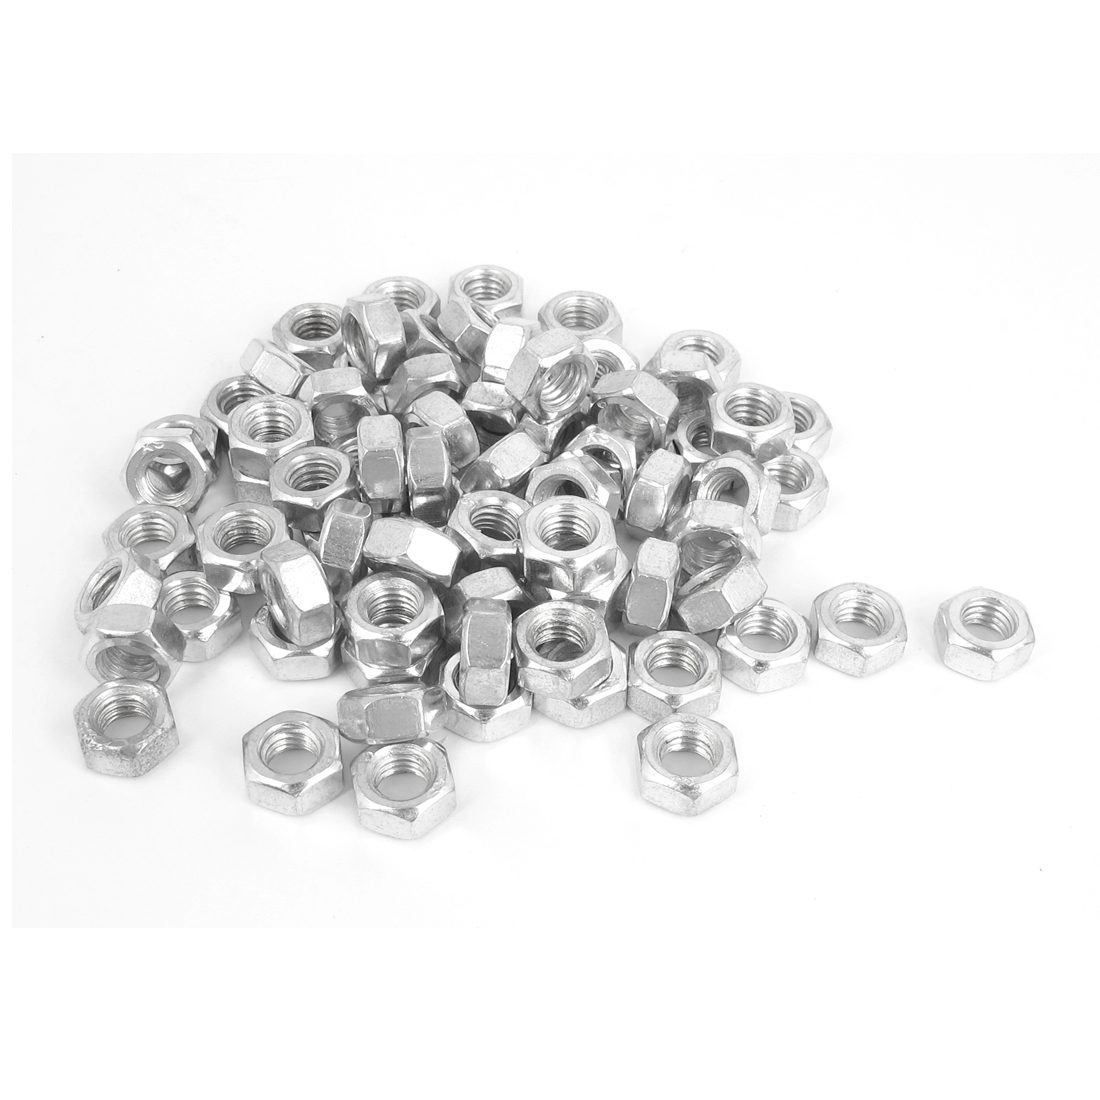 6mm Thread Dia Electric Machine Fastener Metal Screws Hex Nut Silver Tone 80Pcs